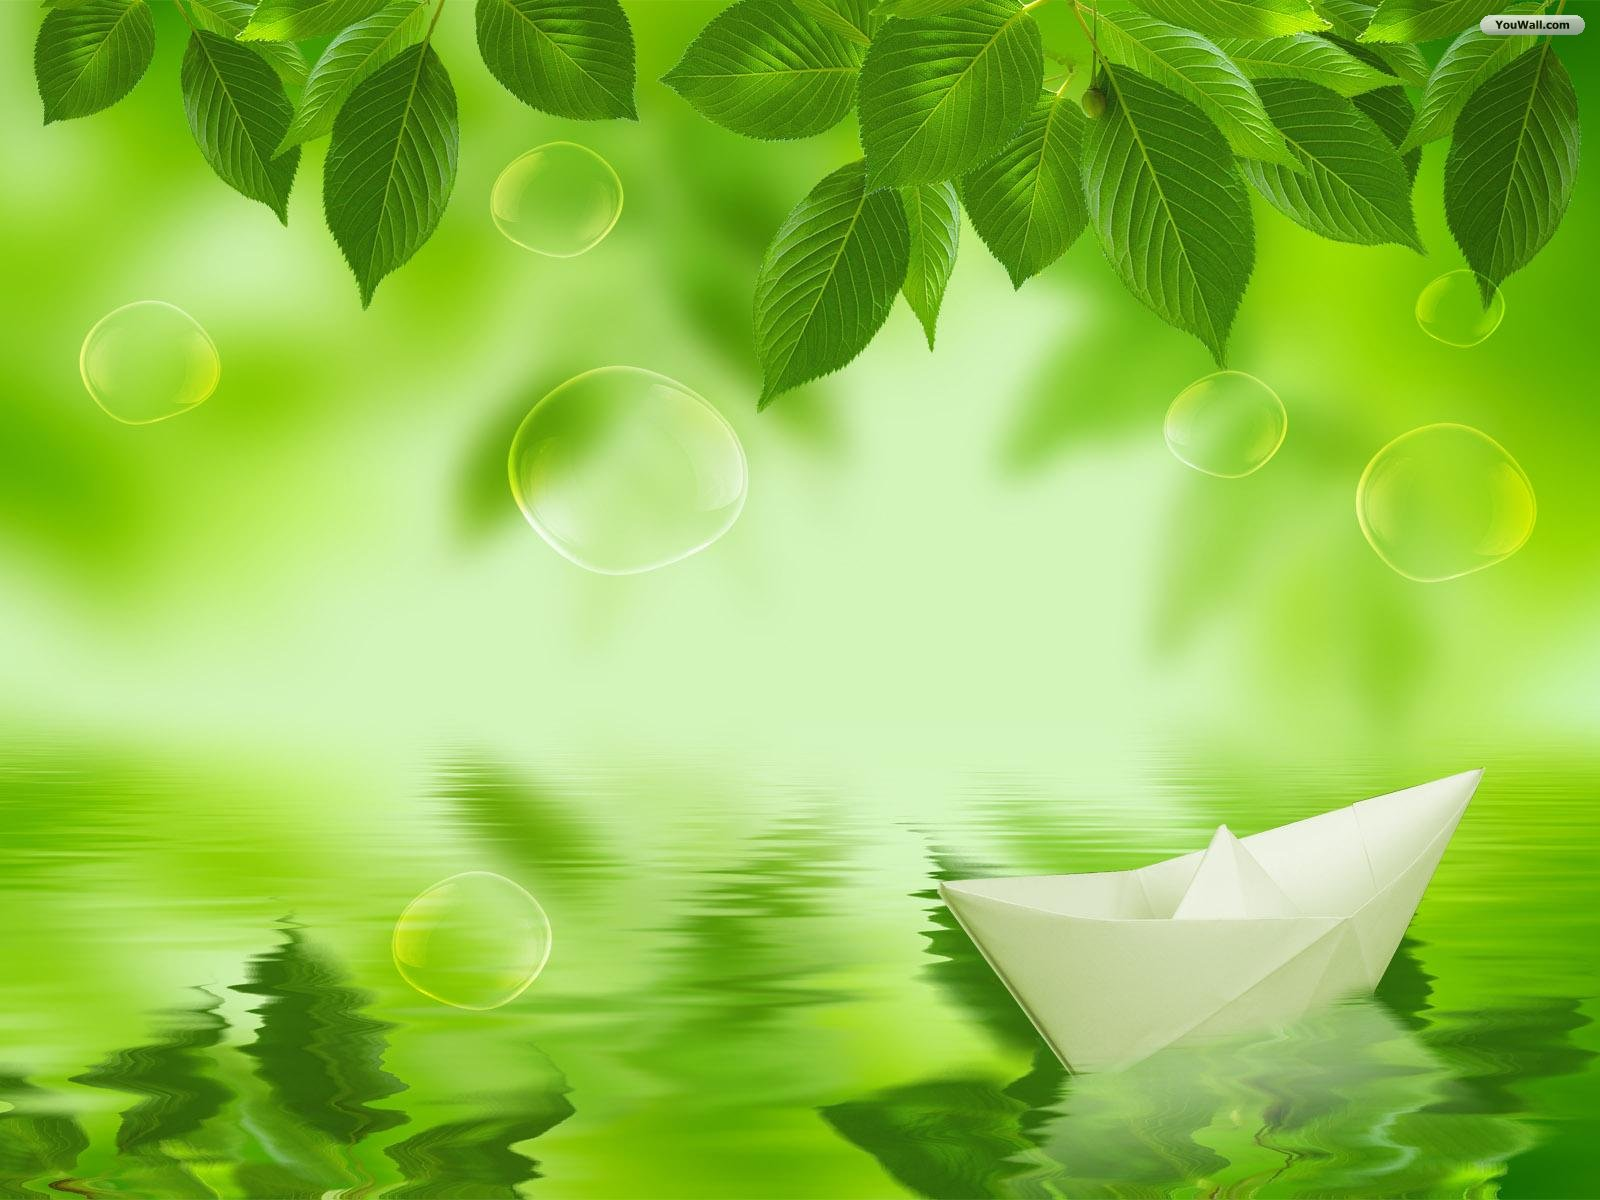 Green Backgrounds Free Desktop HD Wallpapers Hdwaly Blue and Green